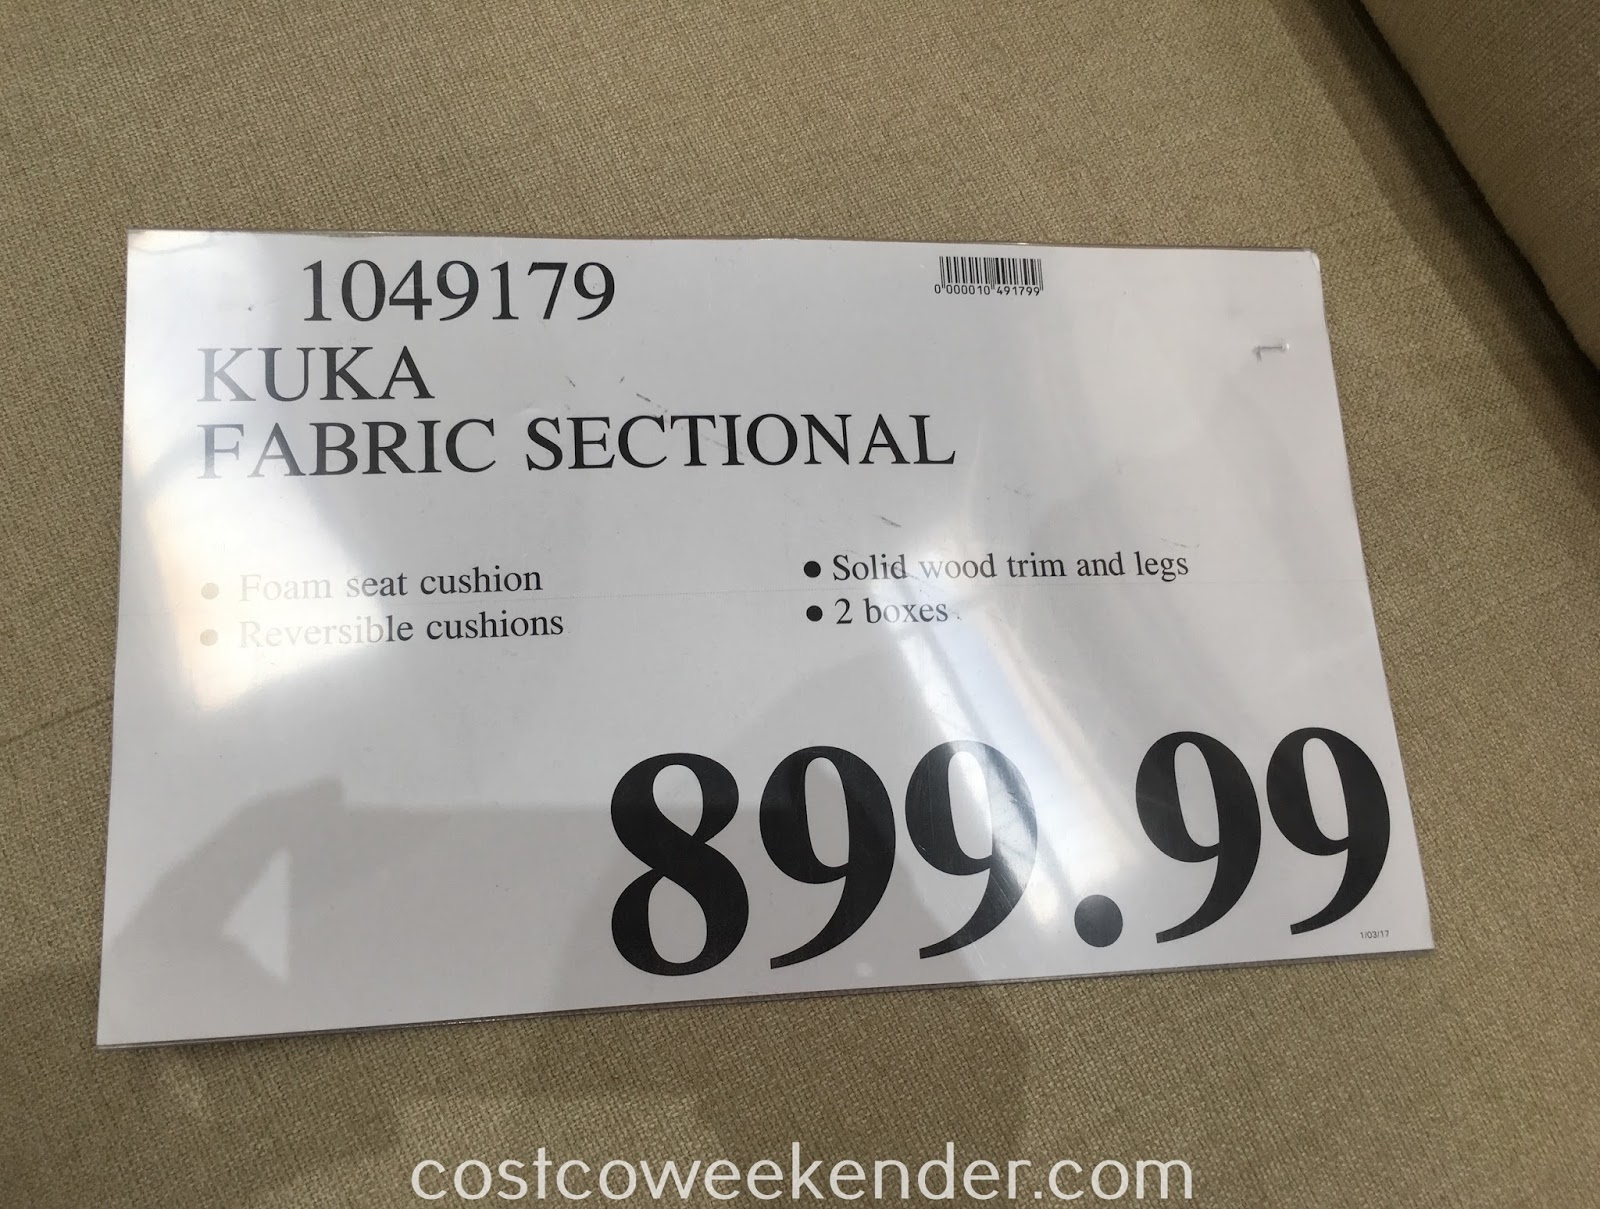 Deal for the Kuka Home Fabric Sectional at Costco